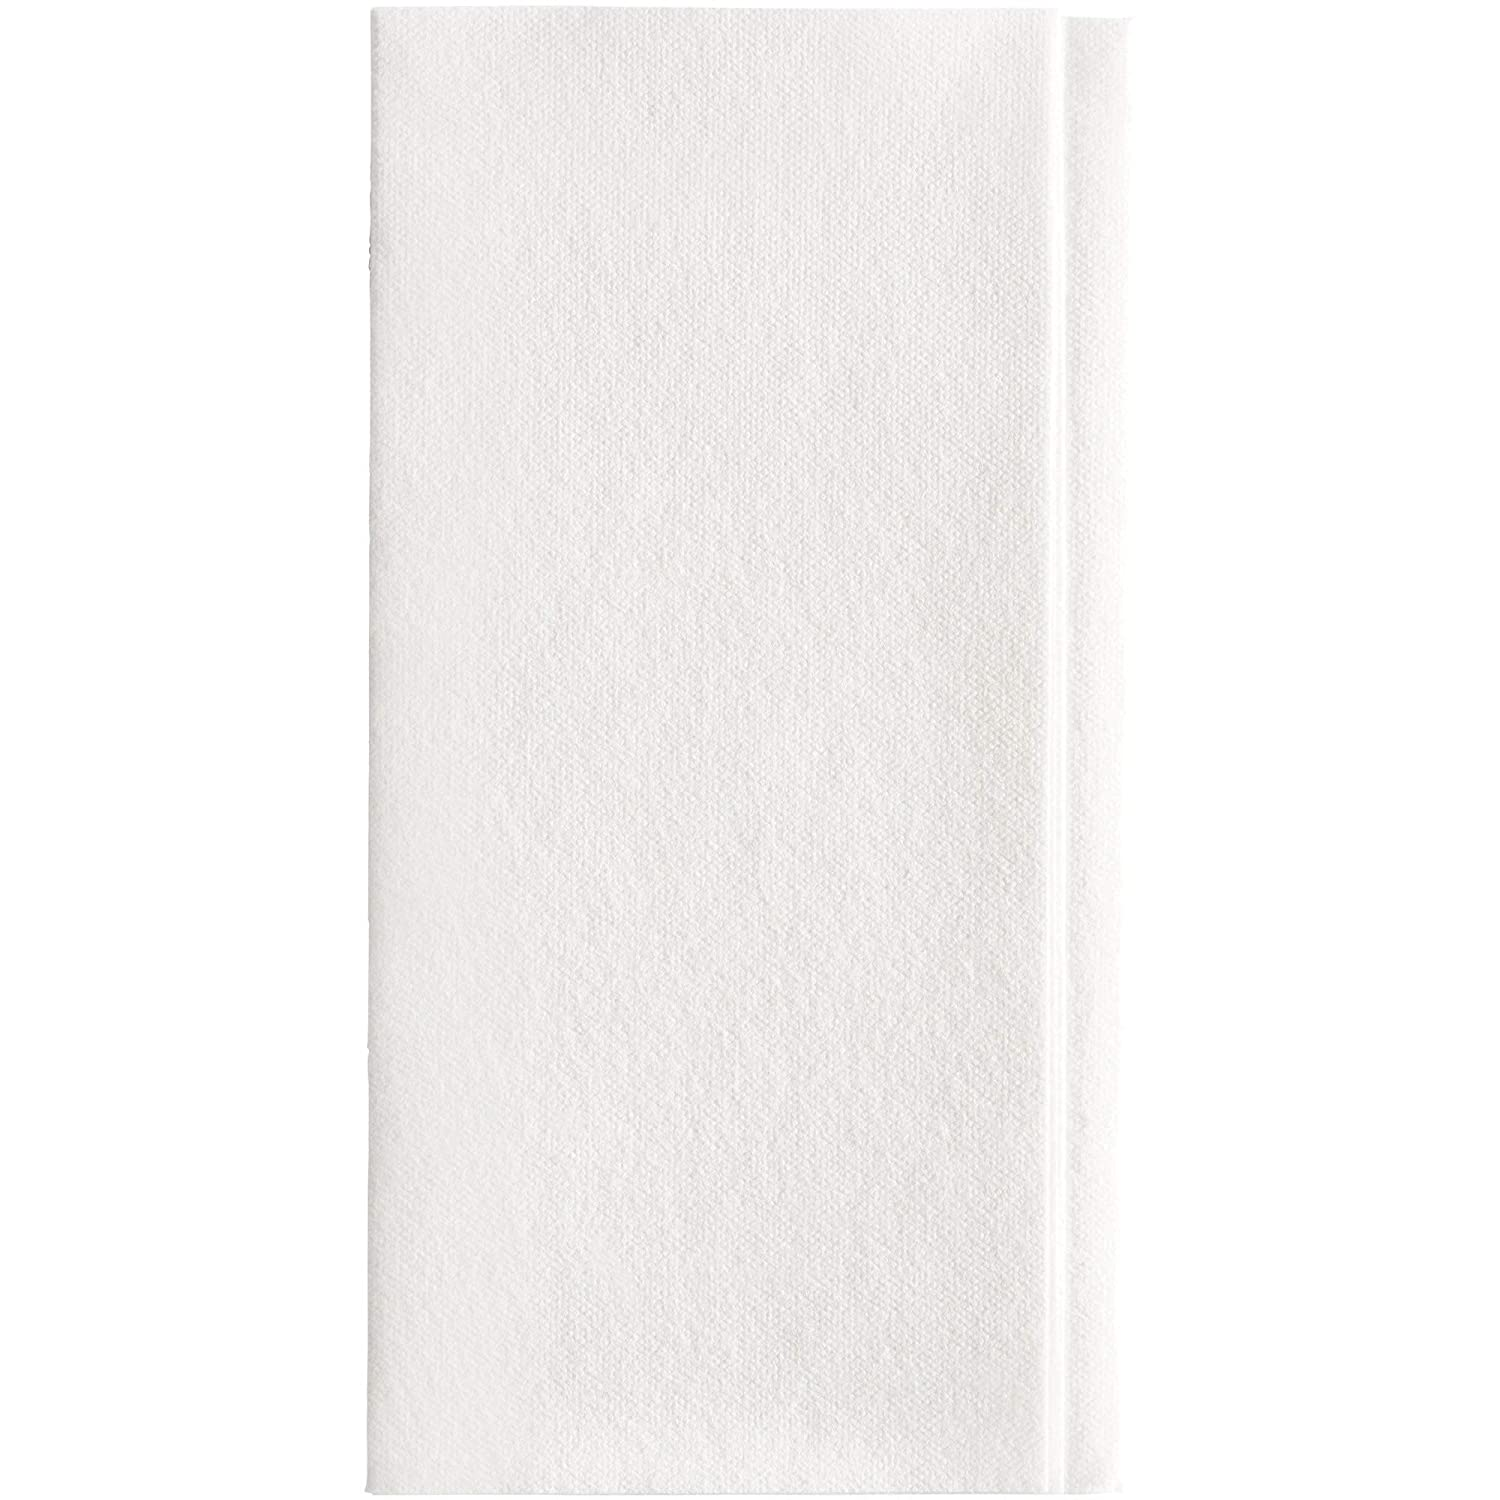 GEORGIA-PACIFIC Dixie Ultra 1/8-Fold Linen Replacement Dinner Napkin (Previously Essence Impressions) by GP PRO (Georgia-Pacific), White, 92117, 100 Napkins Per Pack, 4 Packs Per Case